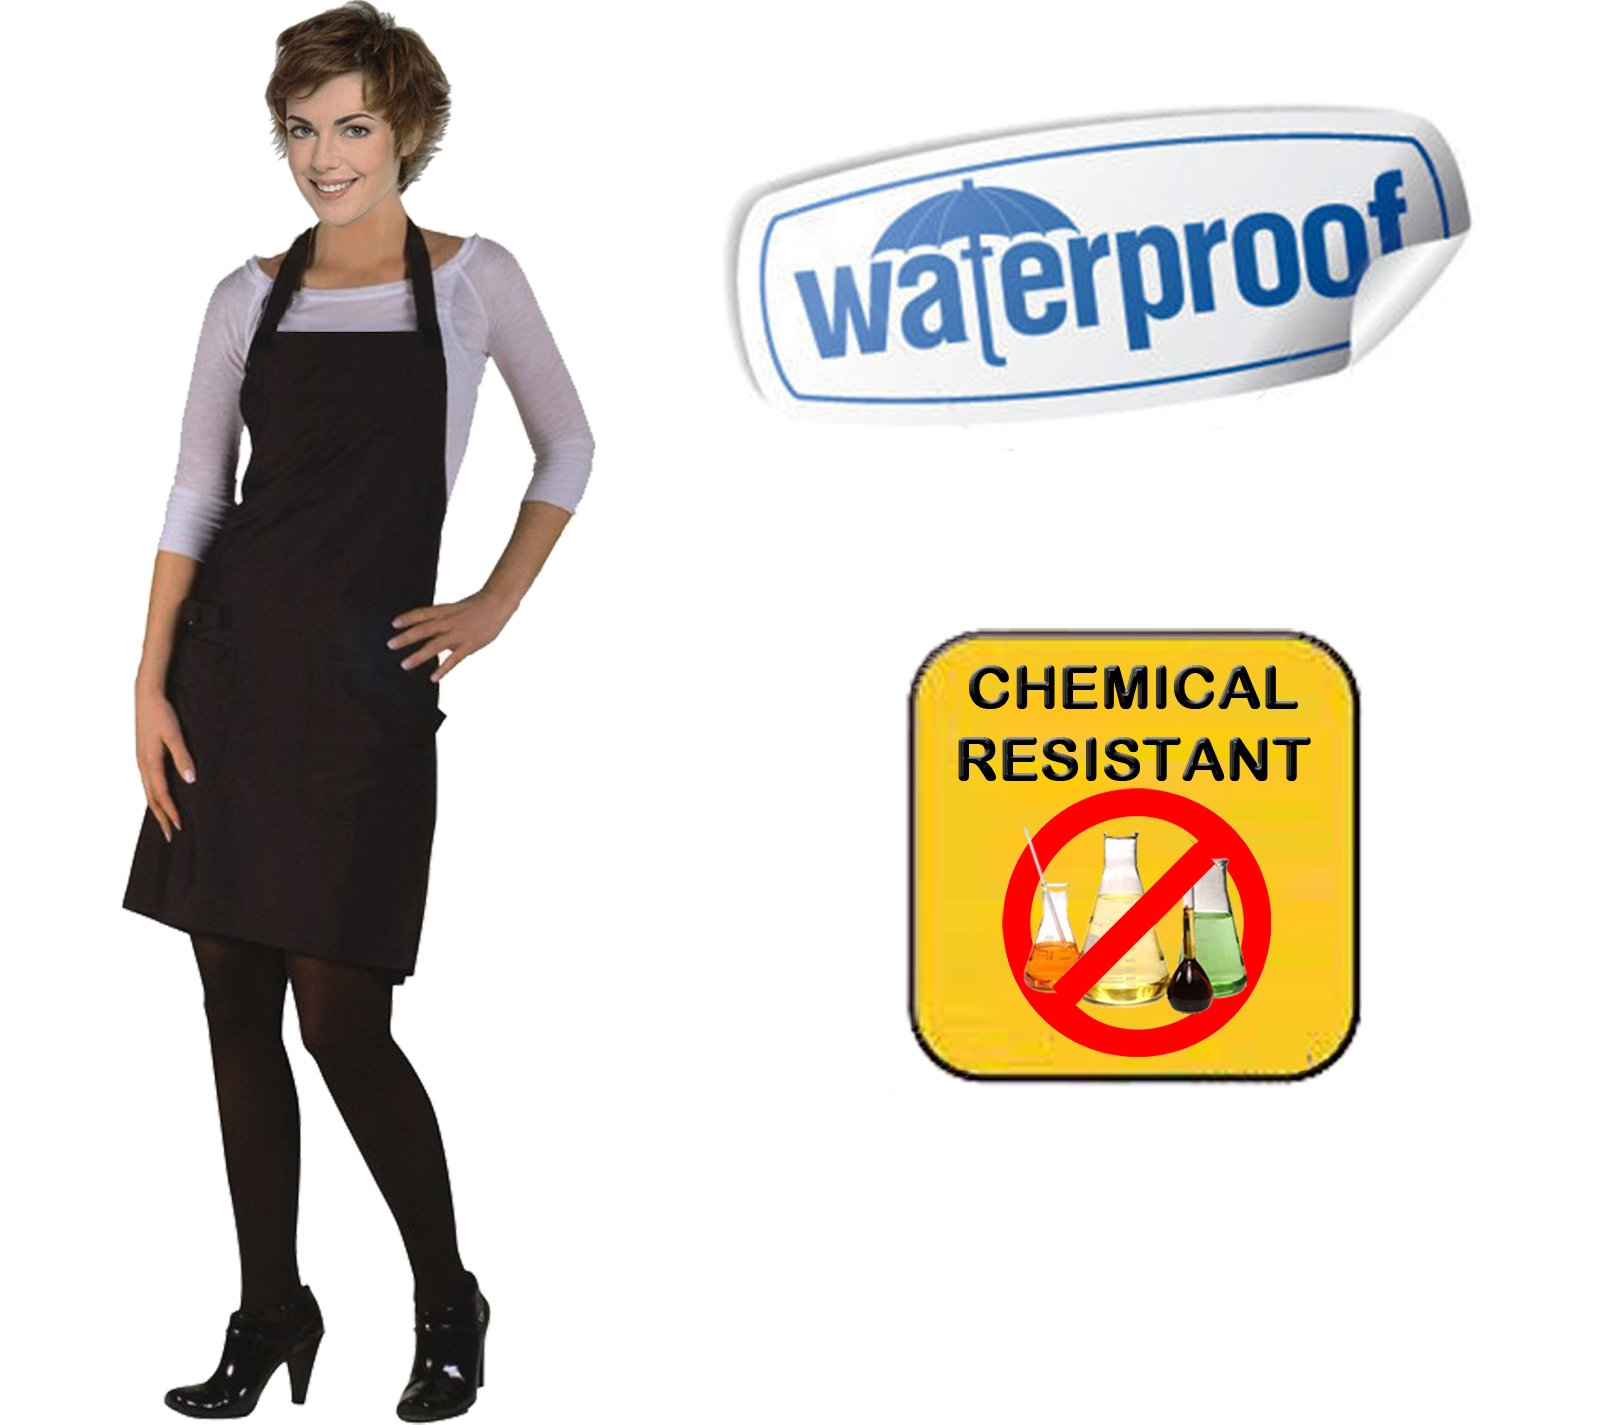 10 NEW Waterproof Chemical Proof Aprons Stylist Technician Apron Spa Hair Salon